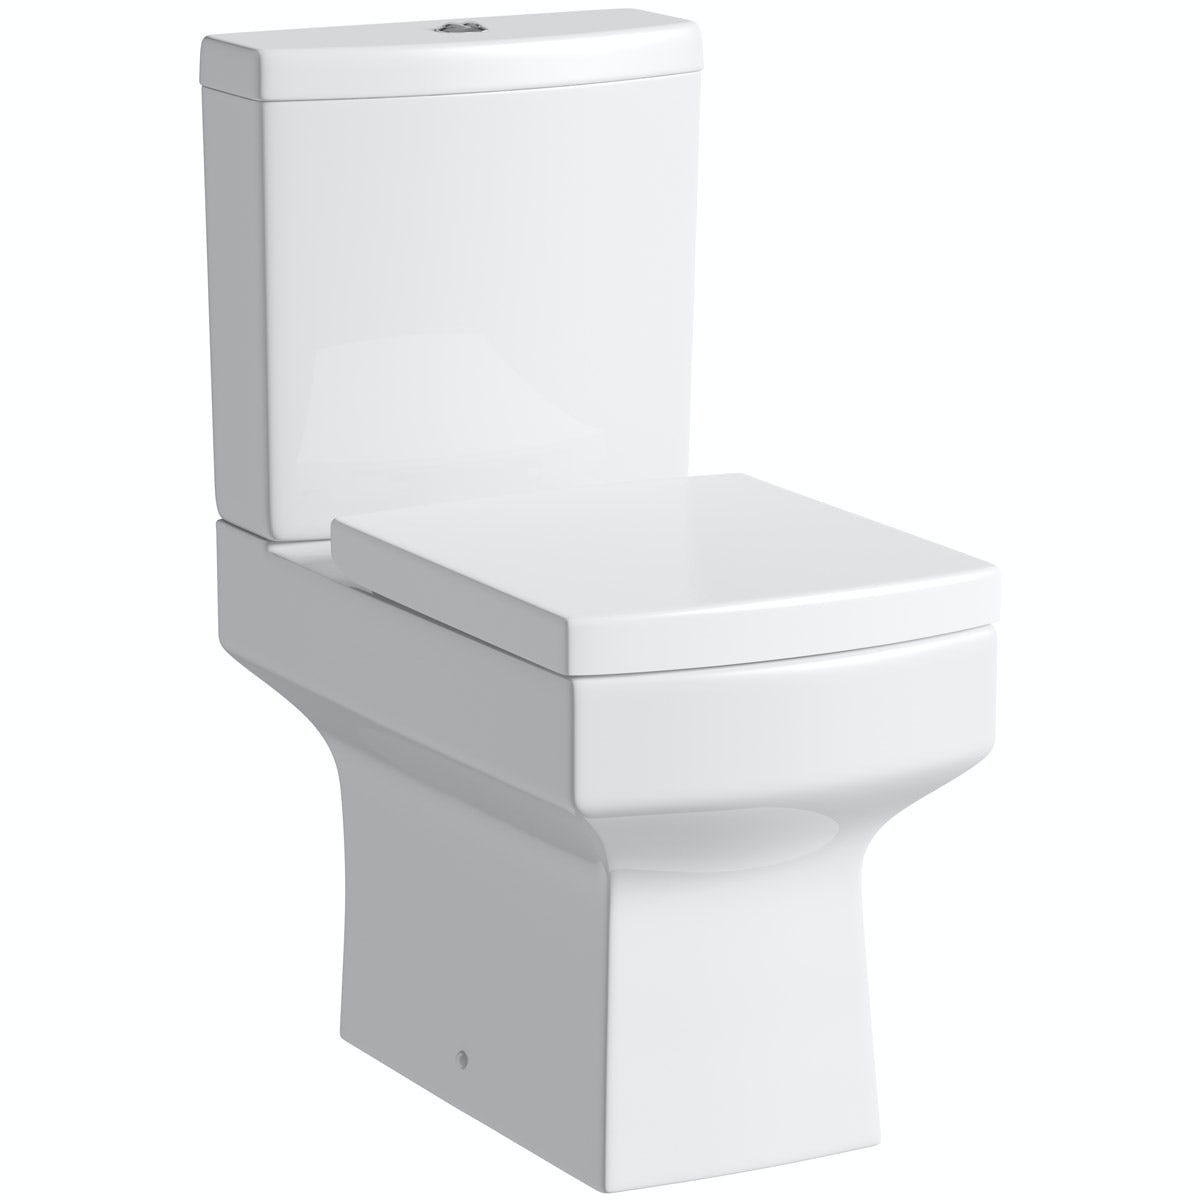 Orchard Wye close coupled toilet with soft close toilet seat with pan connector